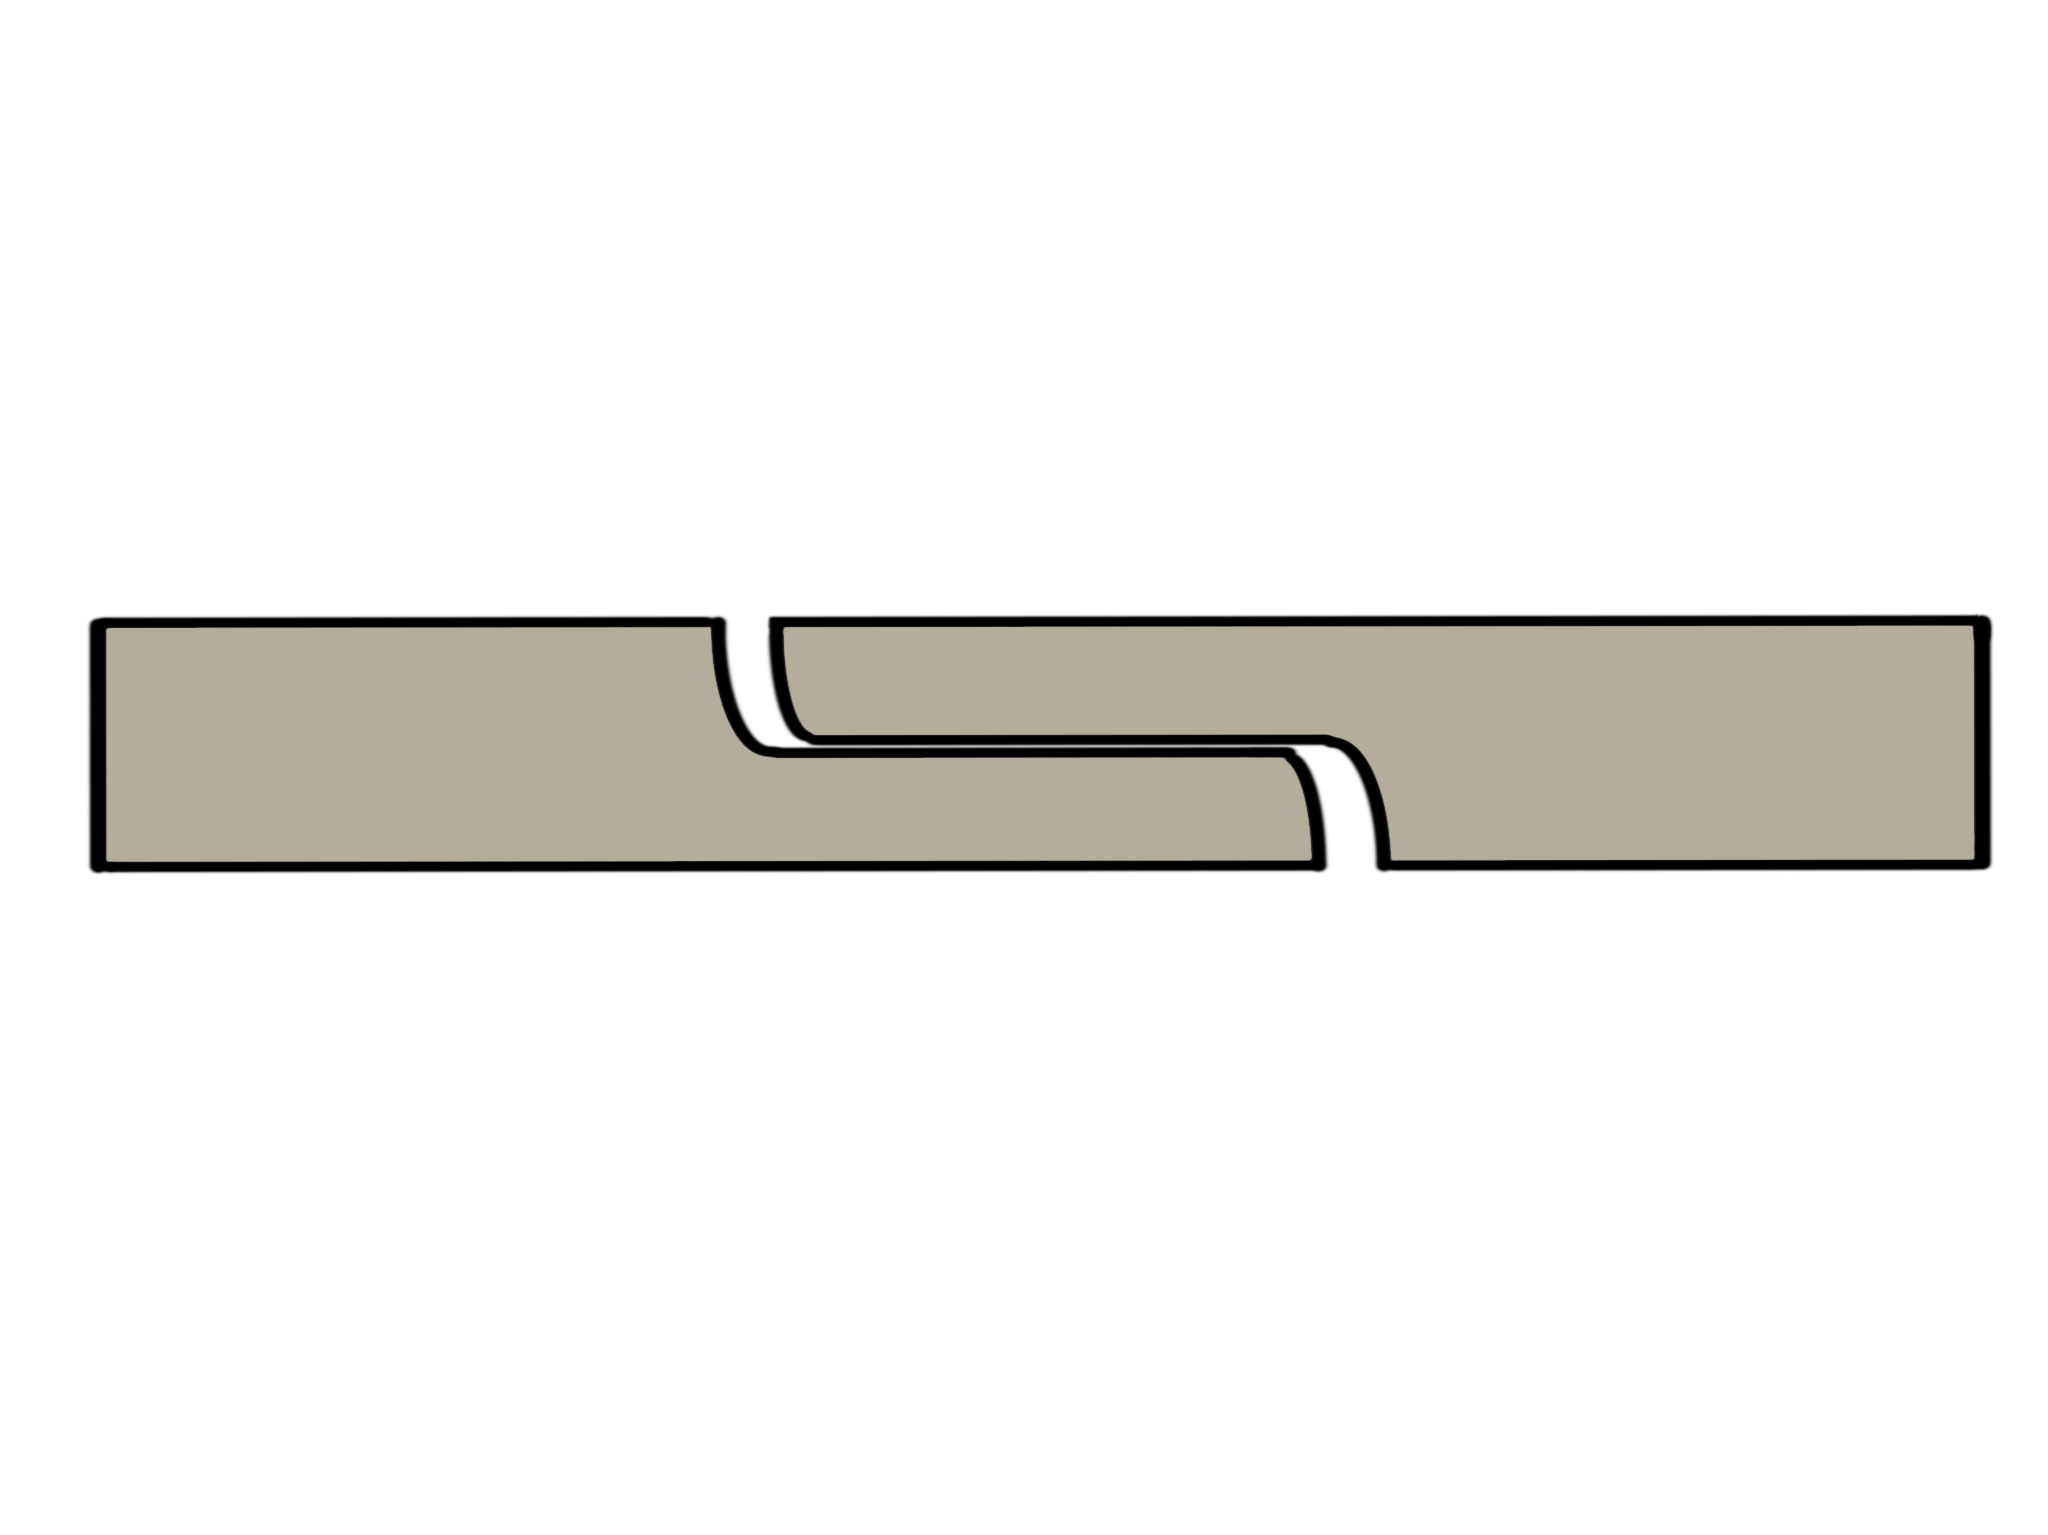 <p>Overlap Joint</p>